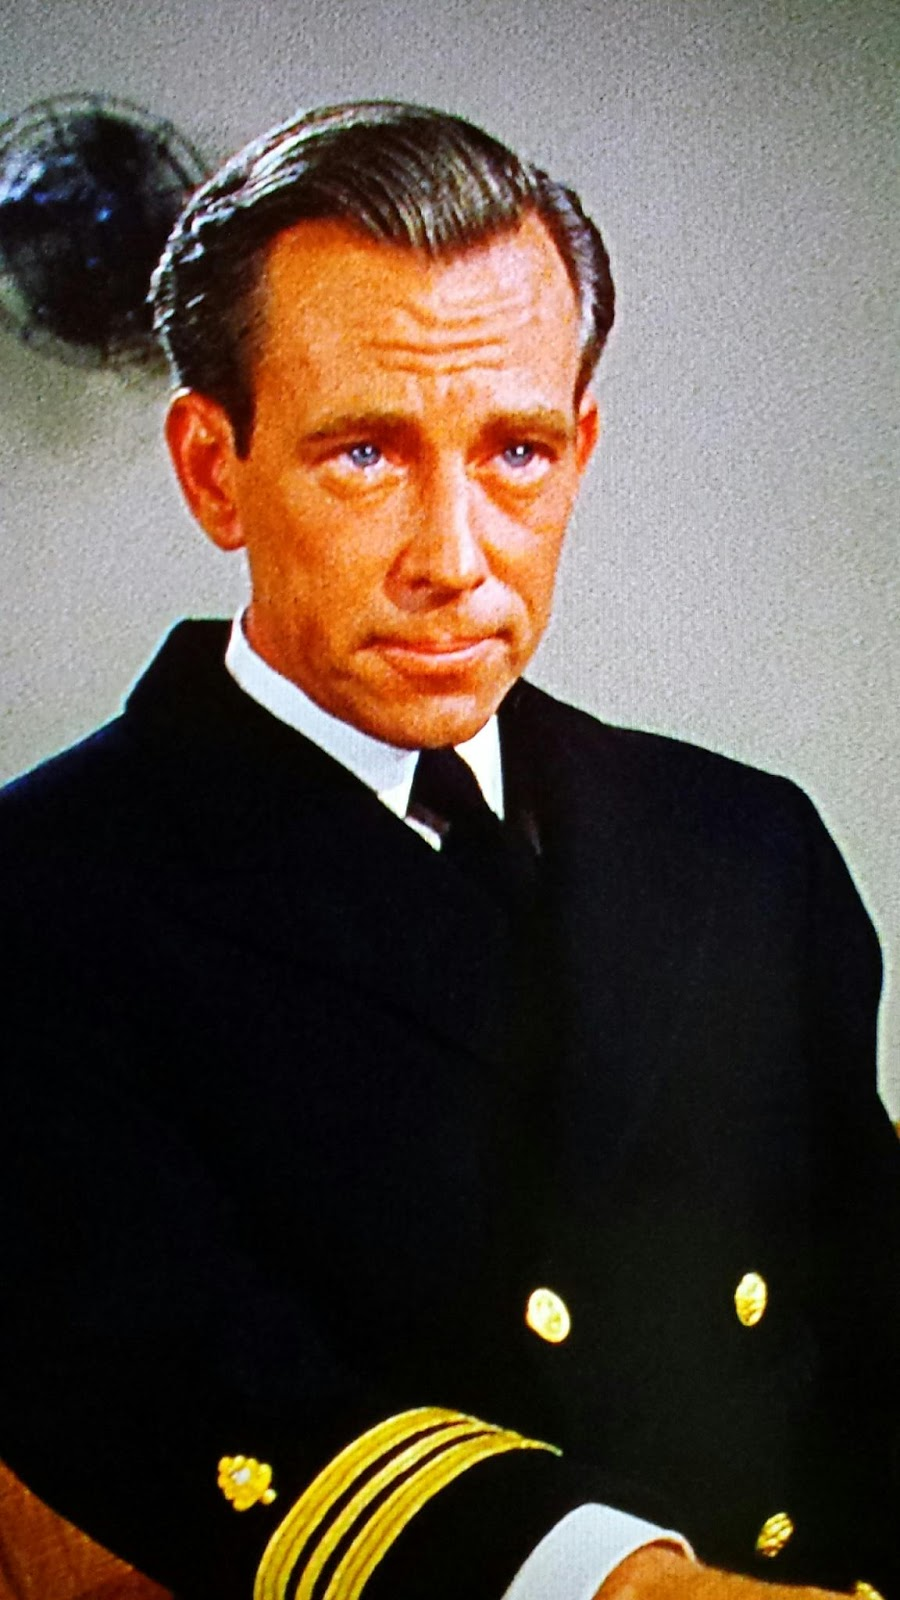 whit bissell tv serieswhit bissell actor, whit bissell imdb, whit bissell grave, whit bissell star trek, whit bissell filmography, whit bissell perry mason, whit bissell rifleman, whit bissell autograph, whit bissell vlp, whit bissell lake placid ny, whit bissell net worth, whit bissell attorney, whit bissell tv series, whit bissell movies, whit bissell magnificent seven, whit bissell height, biografia de whit bissell